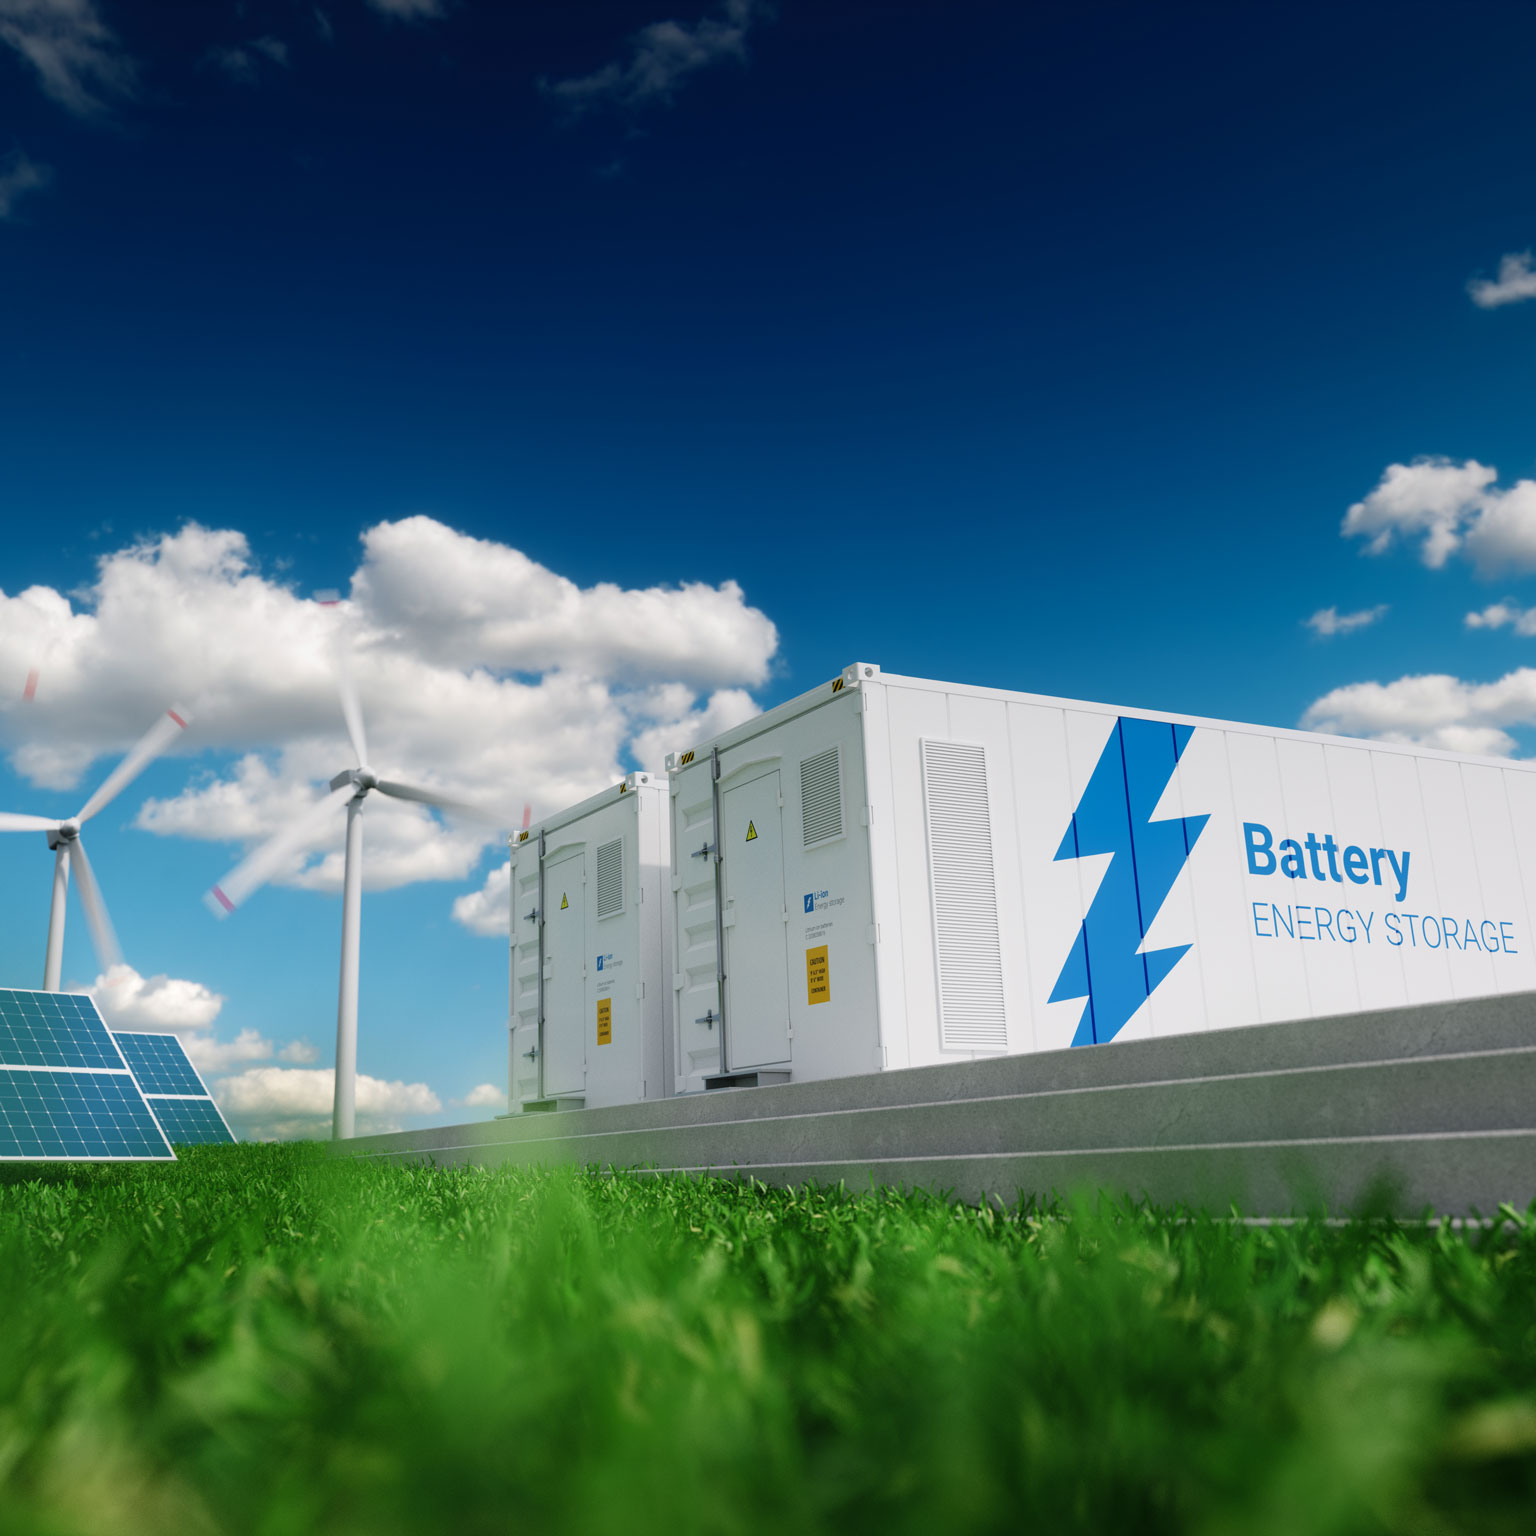 Global energy storage market expected to reach 22.2 GW in 2023, finds GlobalData